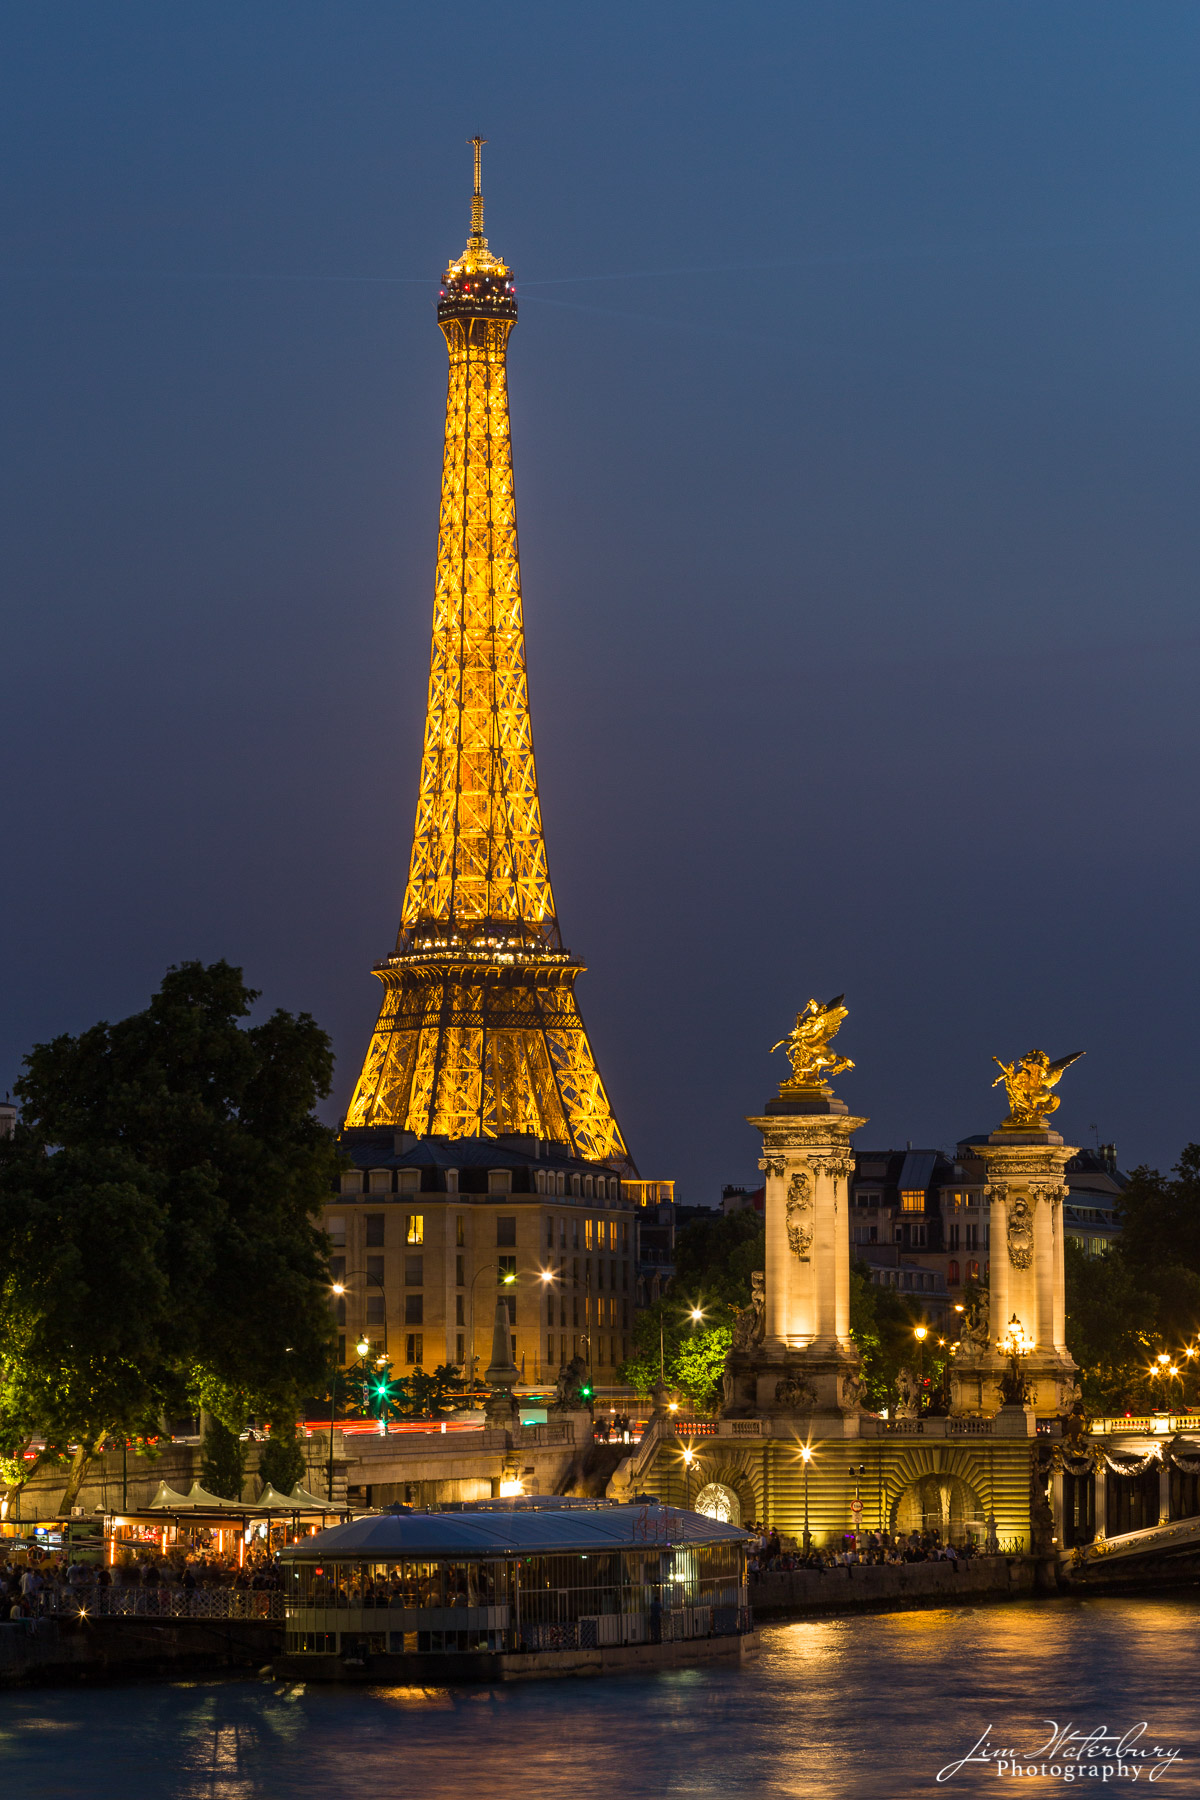 Eiffel Tour, Tour Eiffel, Paris, France, illuminated, night, icon, photo